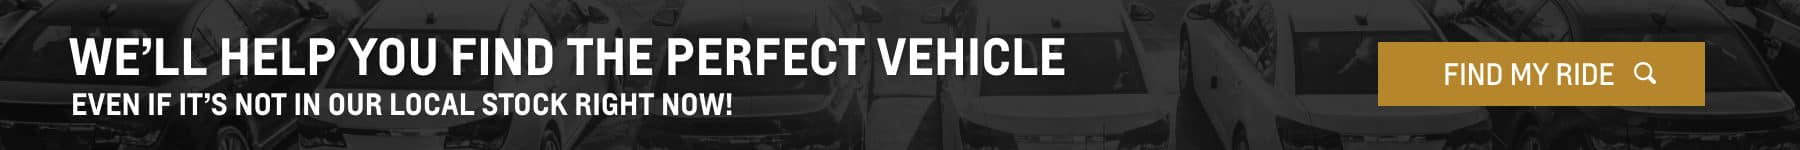 we'll help you find the perfect vehicle, even if it's not in our local stock right now! - desktop